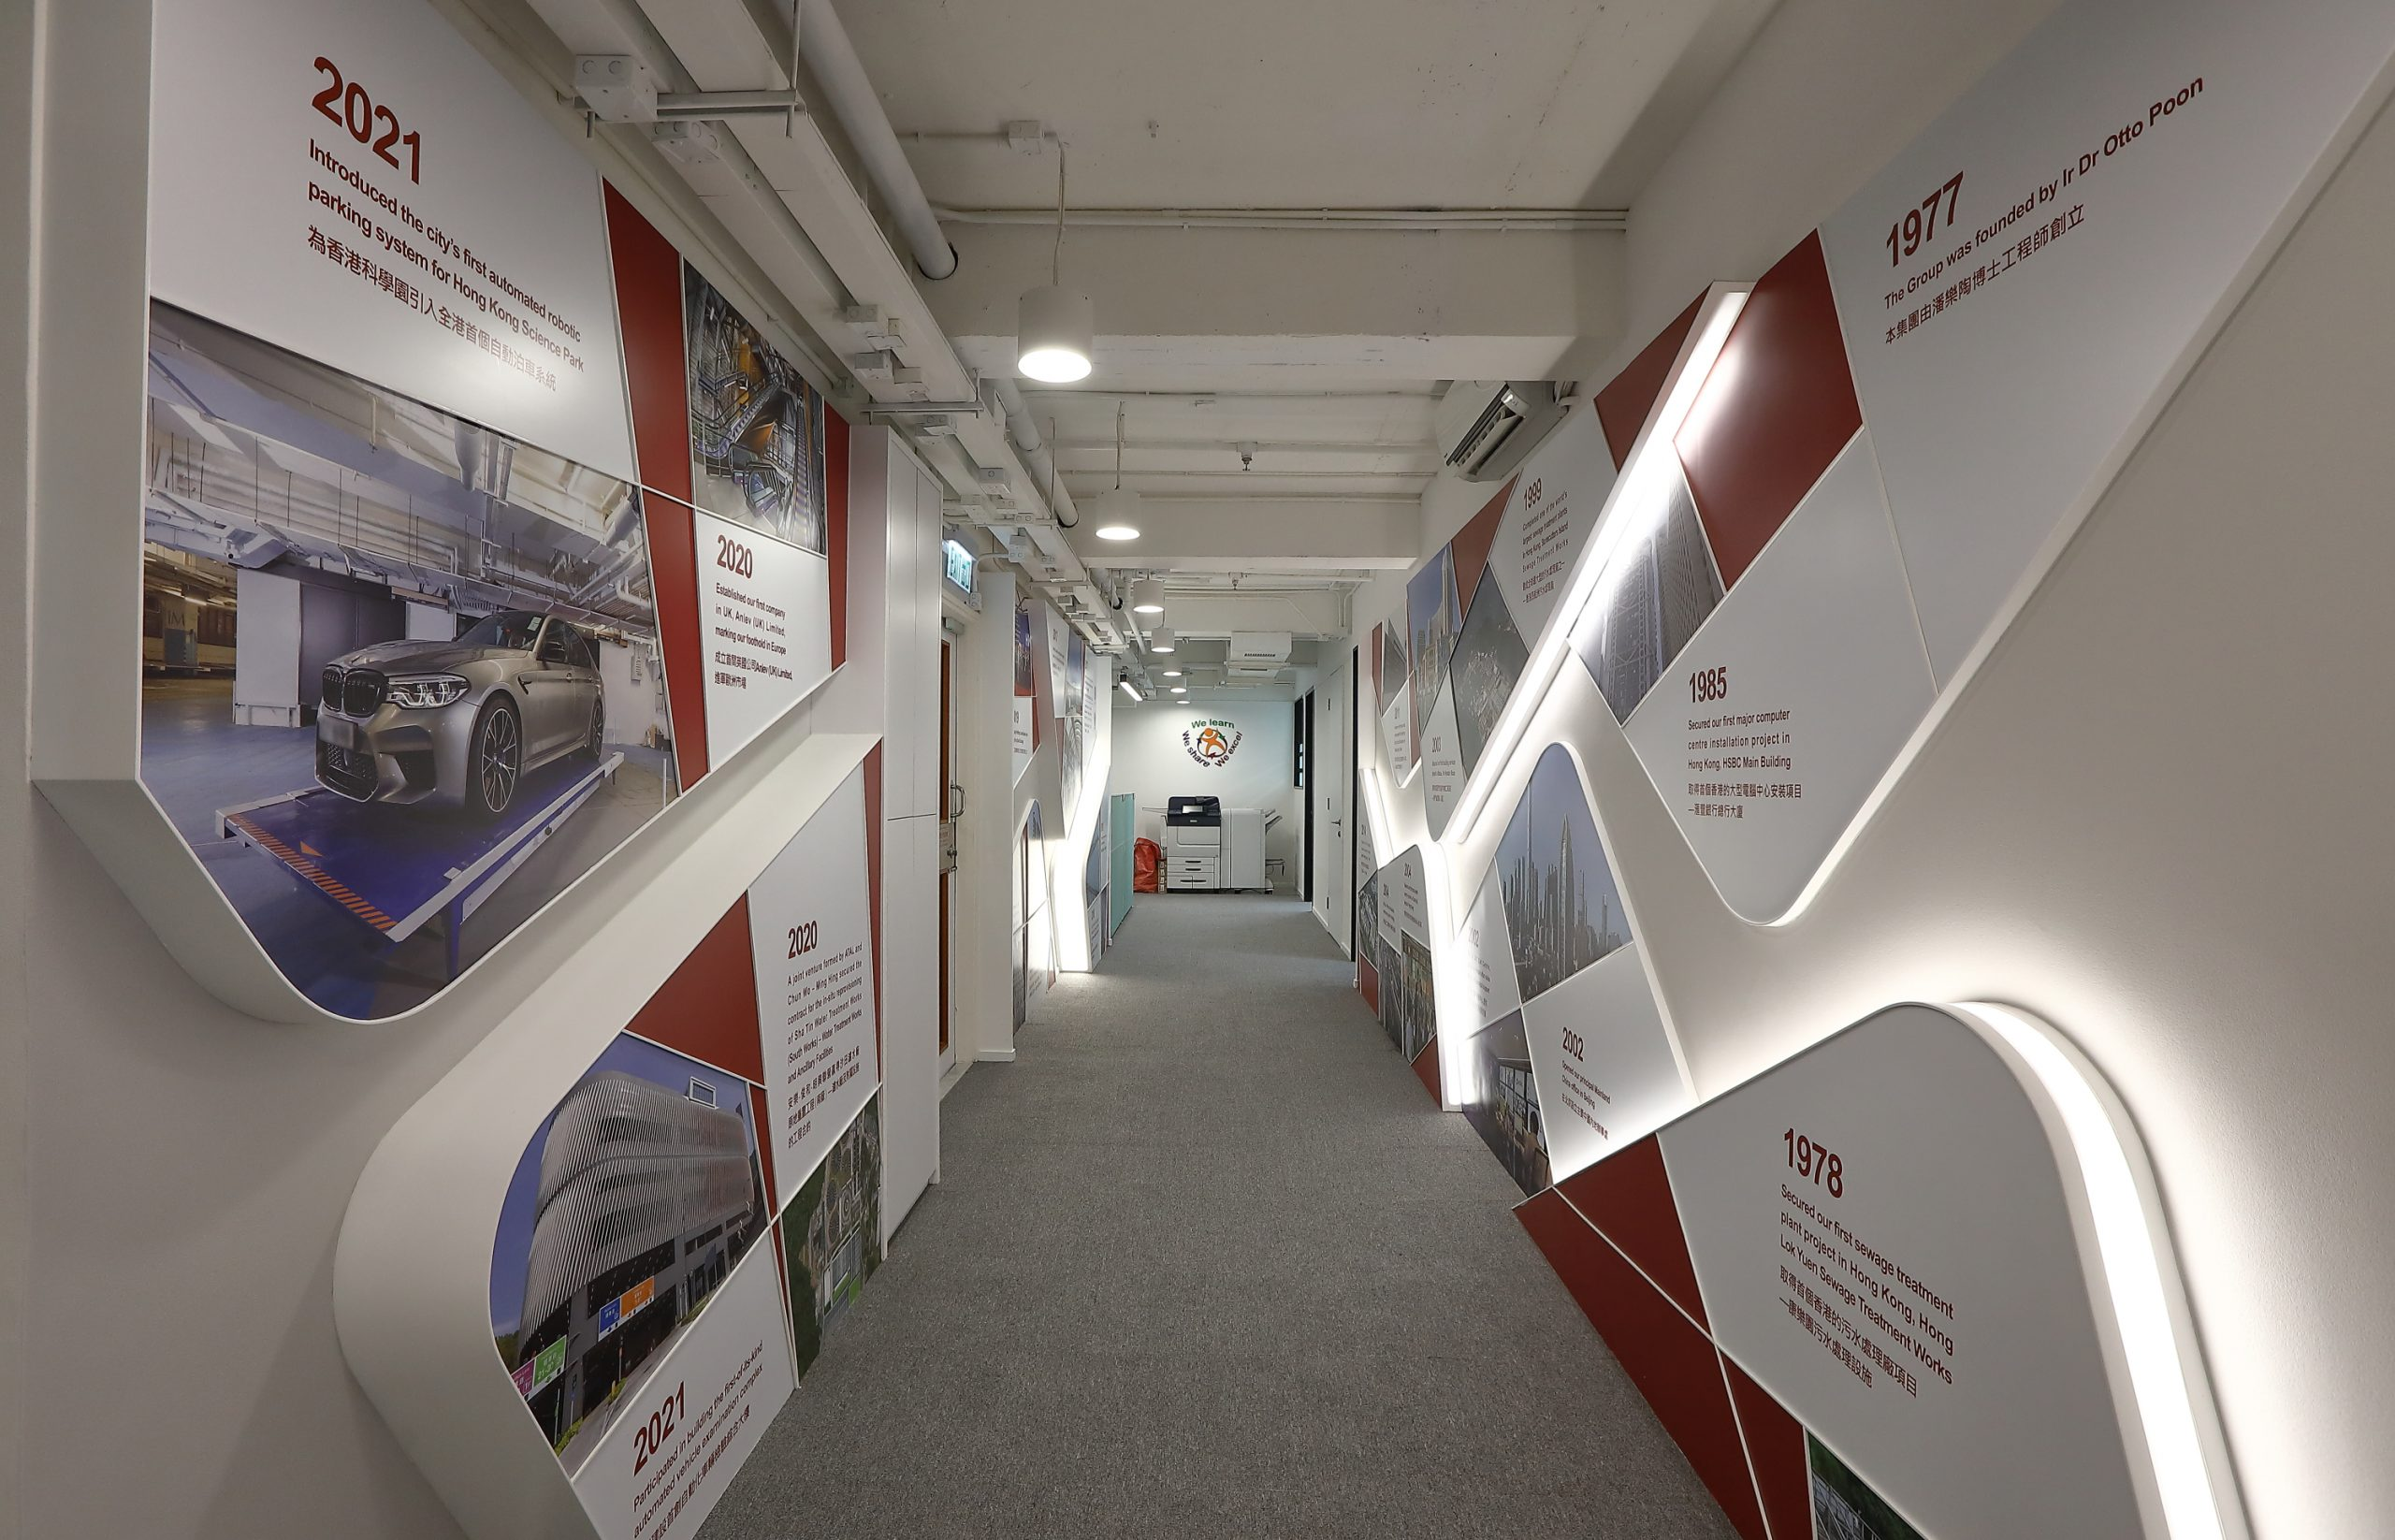 The Group's development milestones are showcased at ATC's entrance, enabling colleagues to strengthen their knowledge and sense of belonging to the Group.